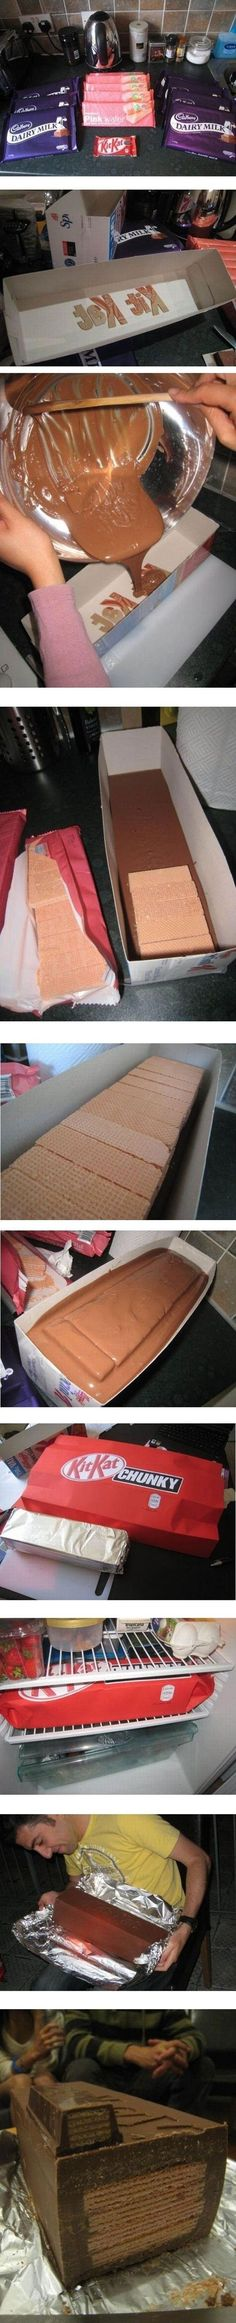 HOW TO MAKE: A GIANT KIT KAT BAR! This would be such a fun gift!